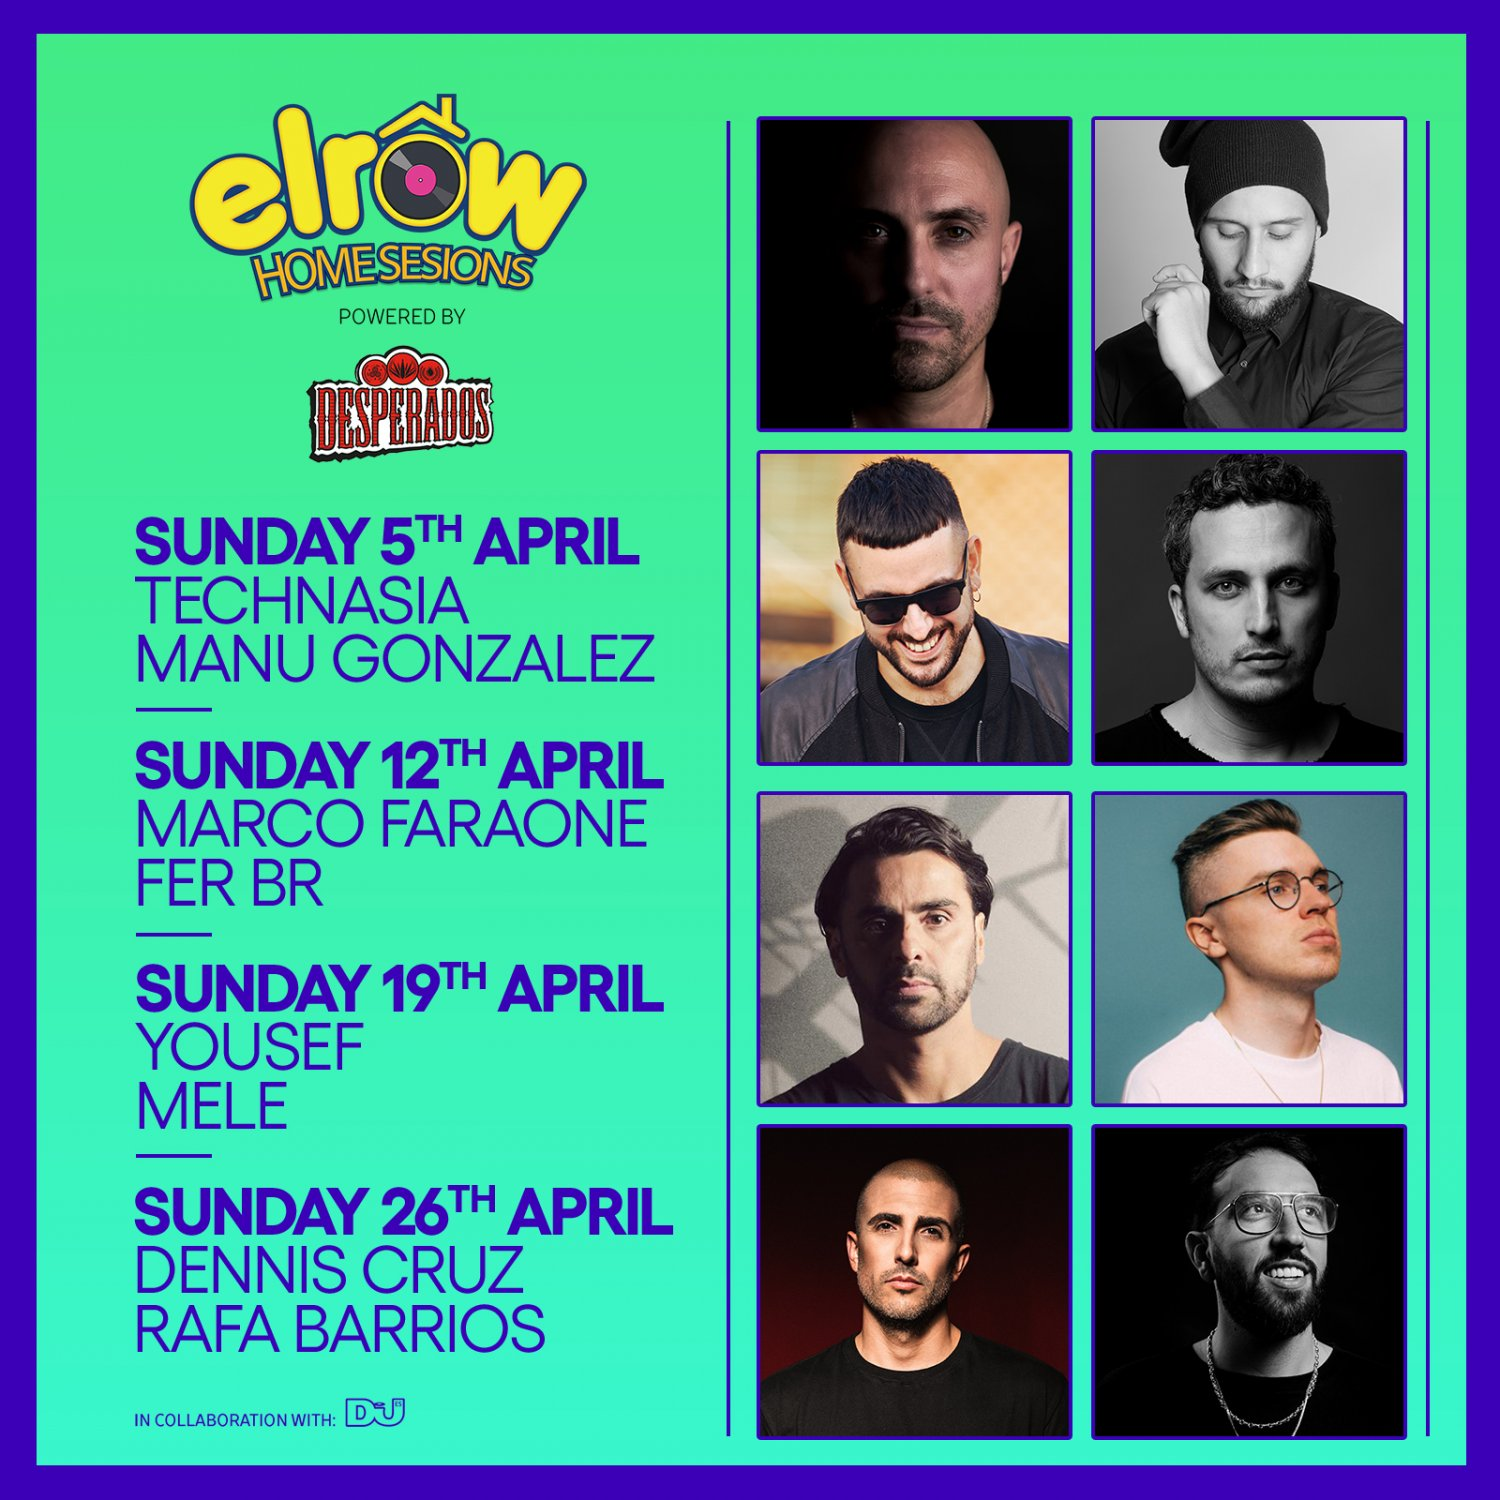 Elrow Bring The Party To Your Place Ibiza Spotlight